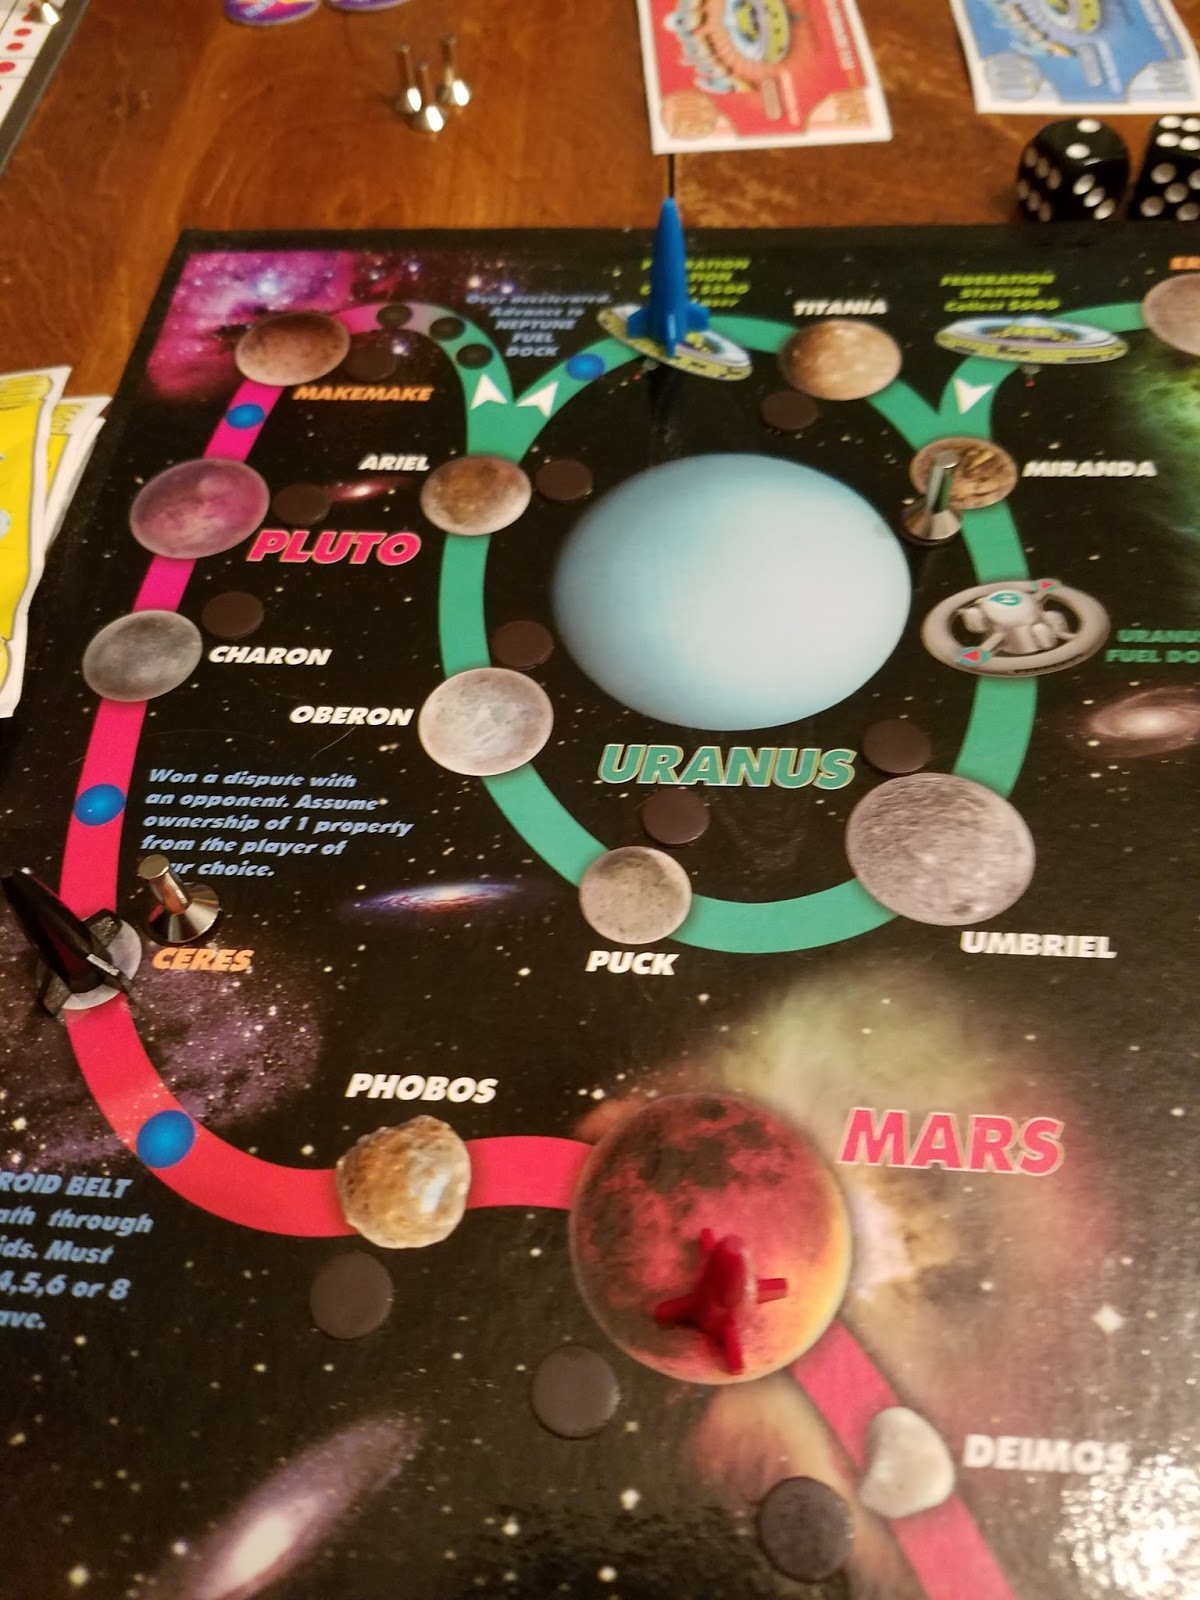 Solarquest The Space Real Estate Game Mission To Mars